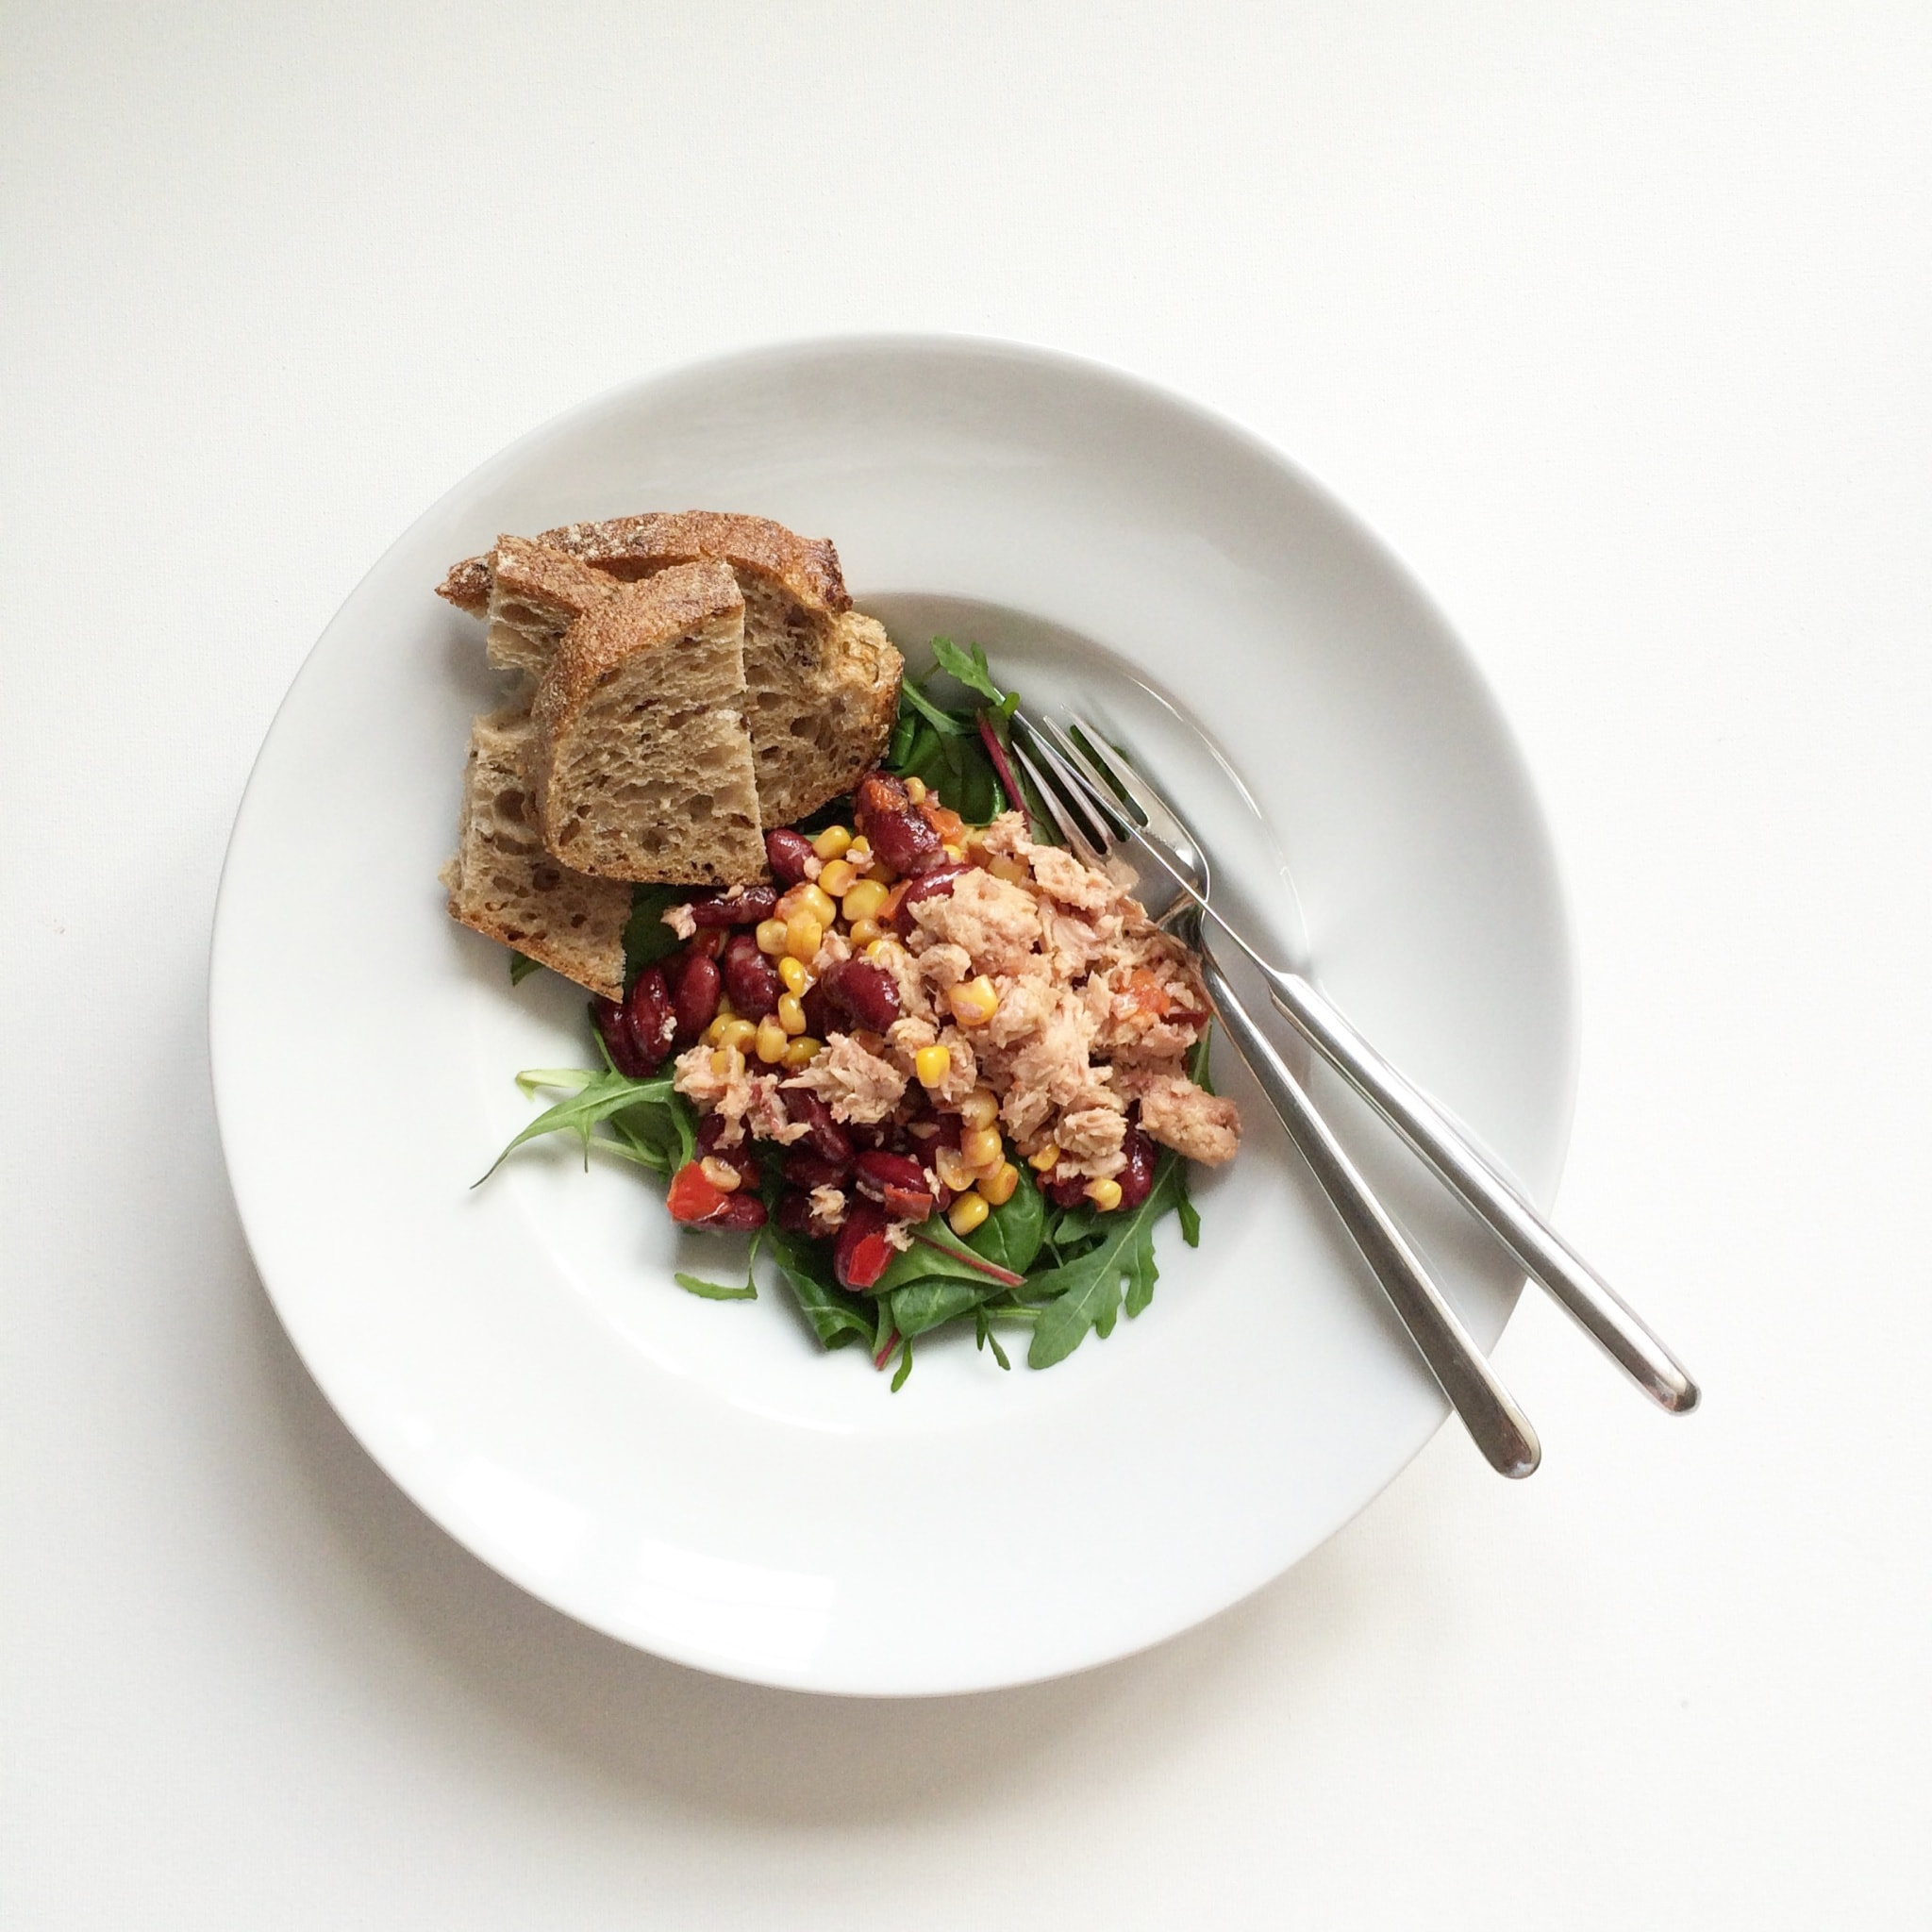 image8 - Snelle, slimme lunchtips